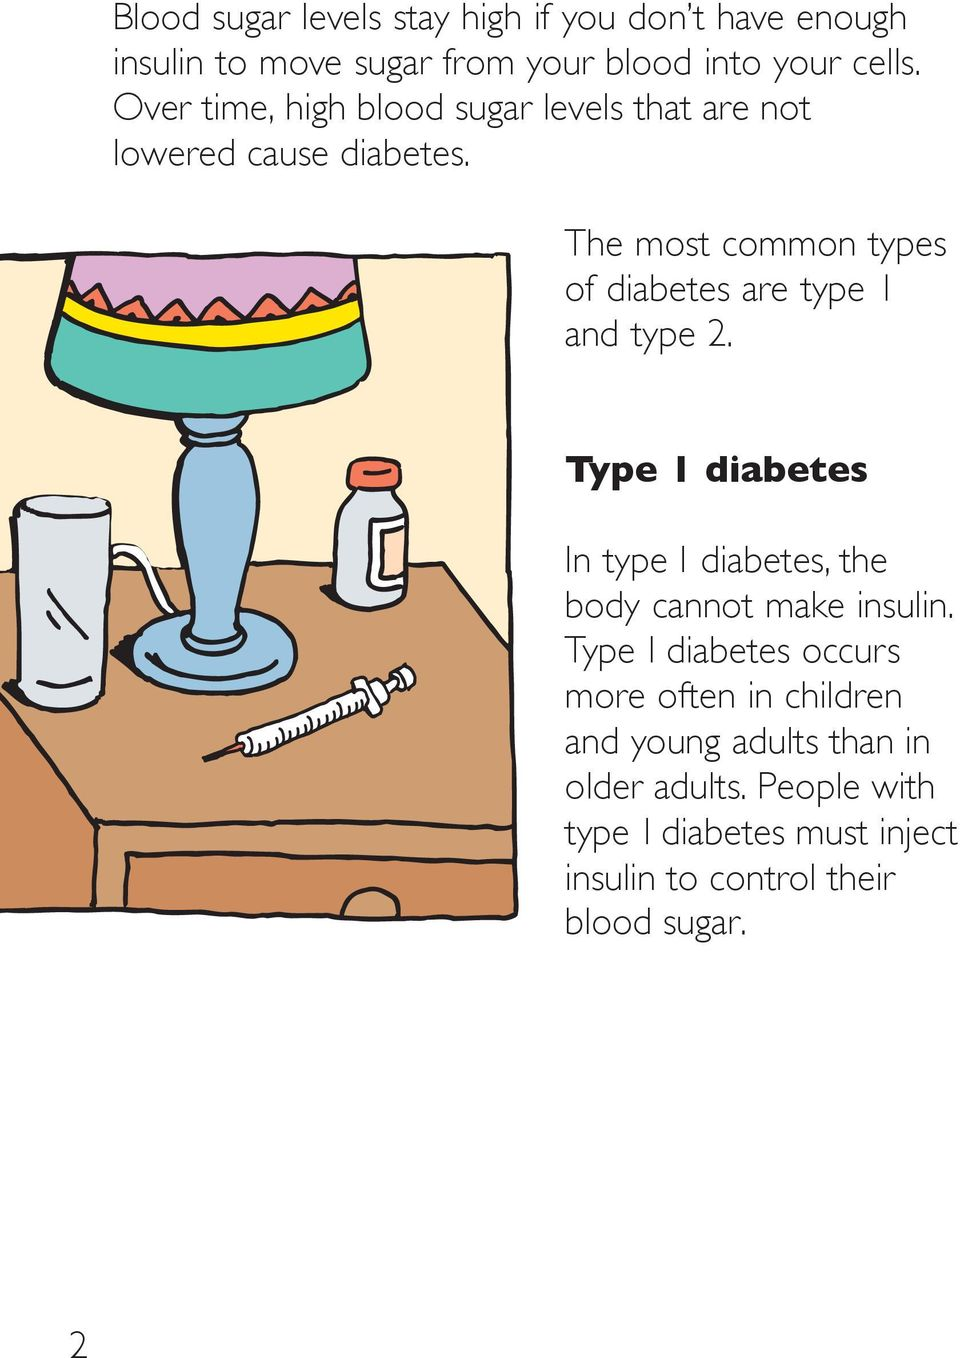 The most common types of diabetes are type 1 and type 2.